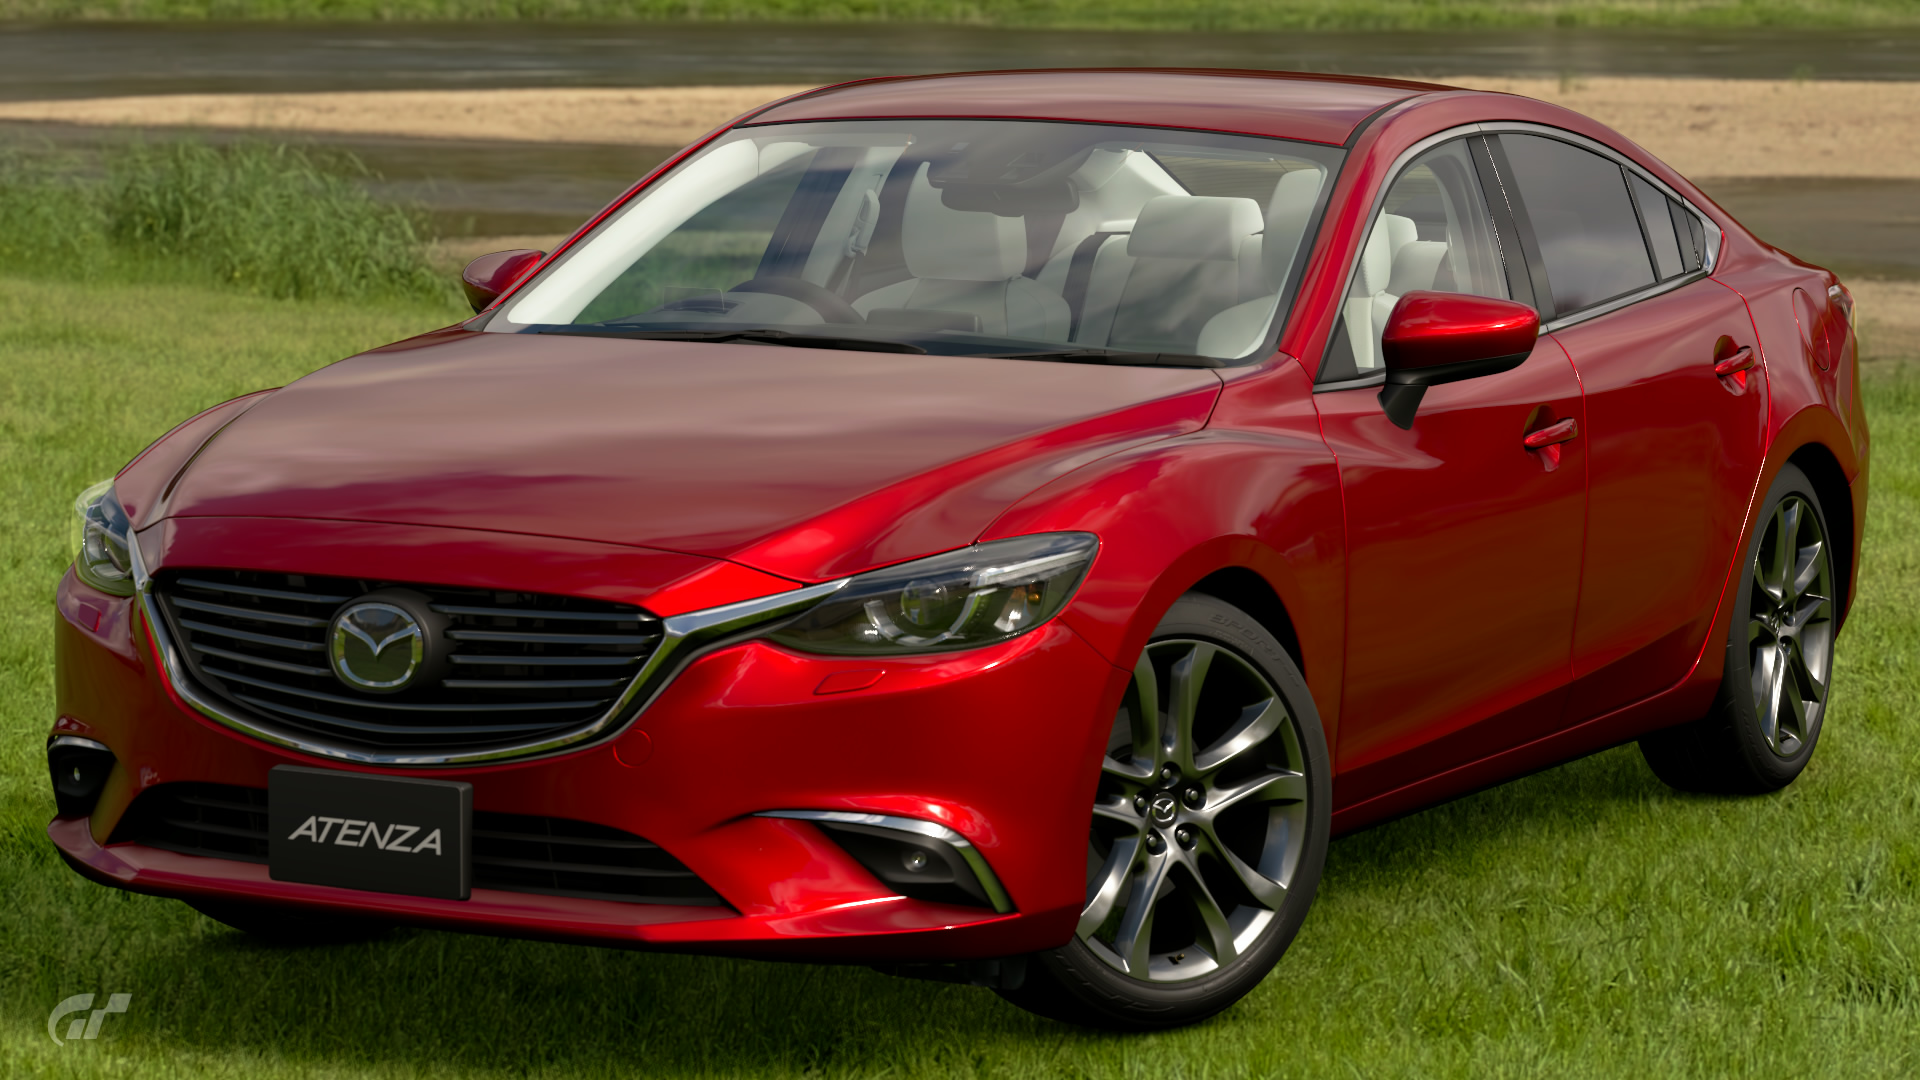 Mazda Atenza Sedan XD L Package '15